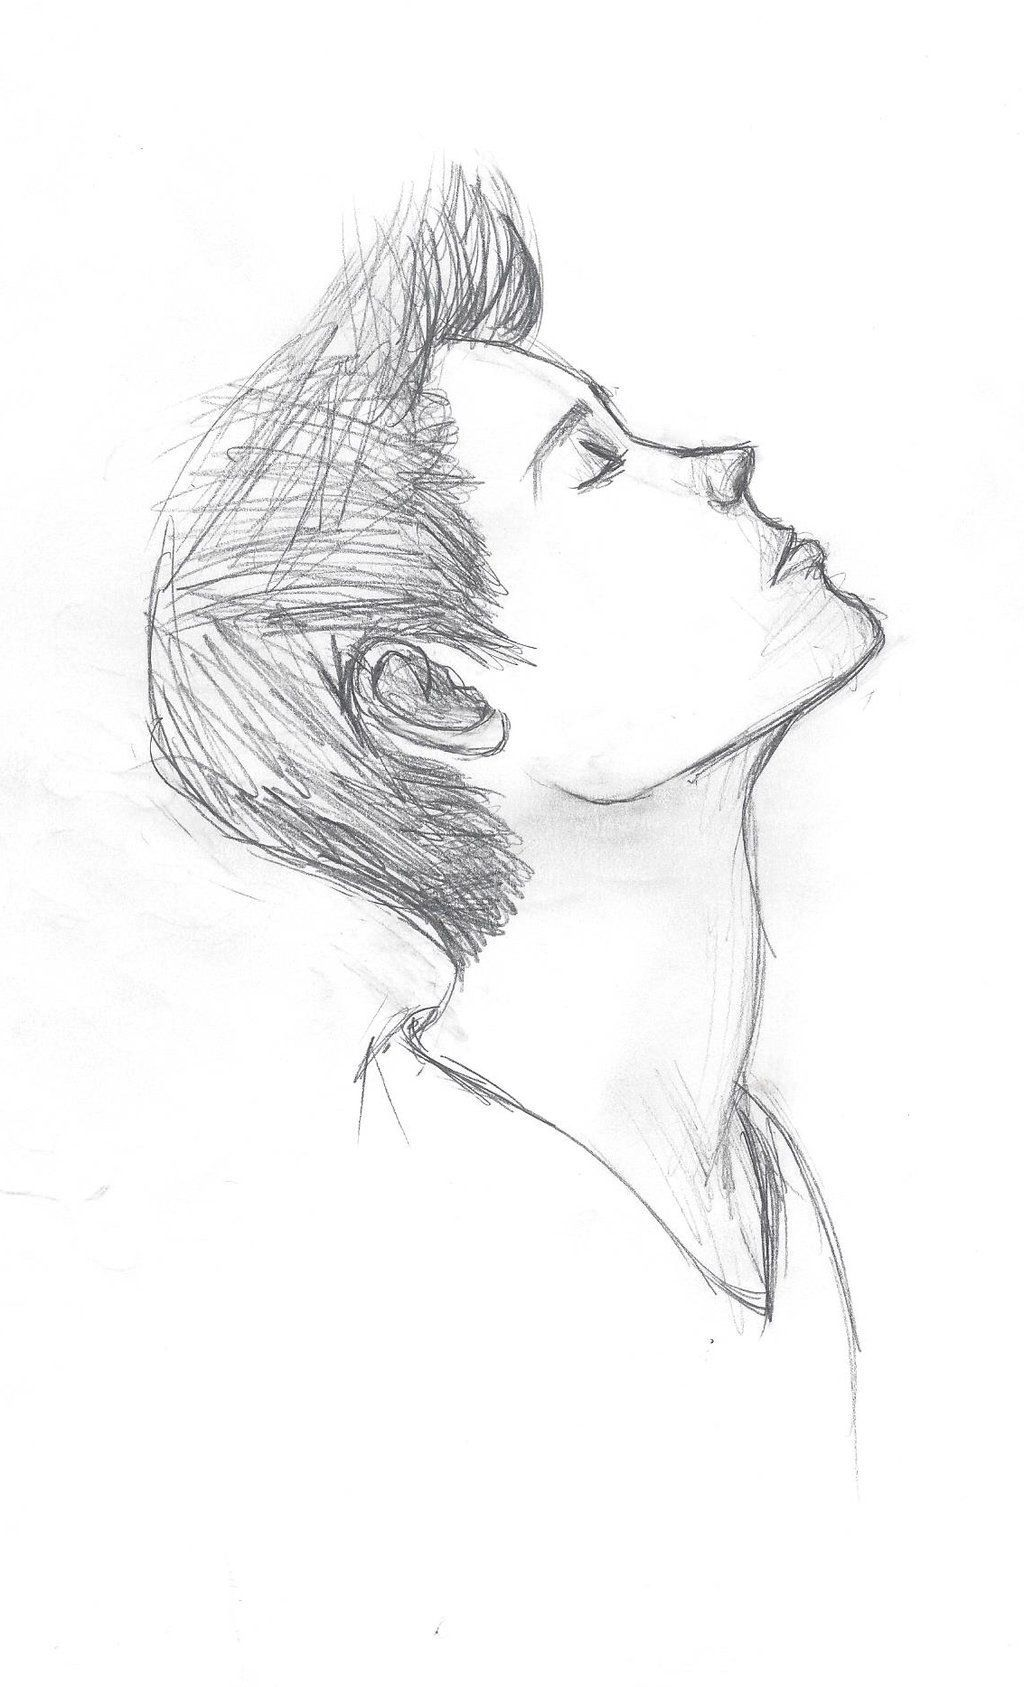 Sad Images Pencil Sketch For Boys